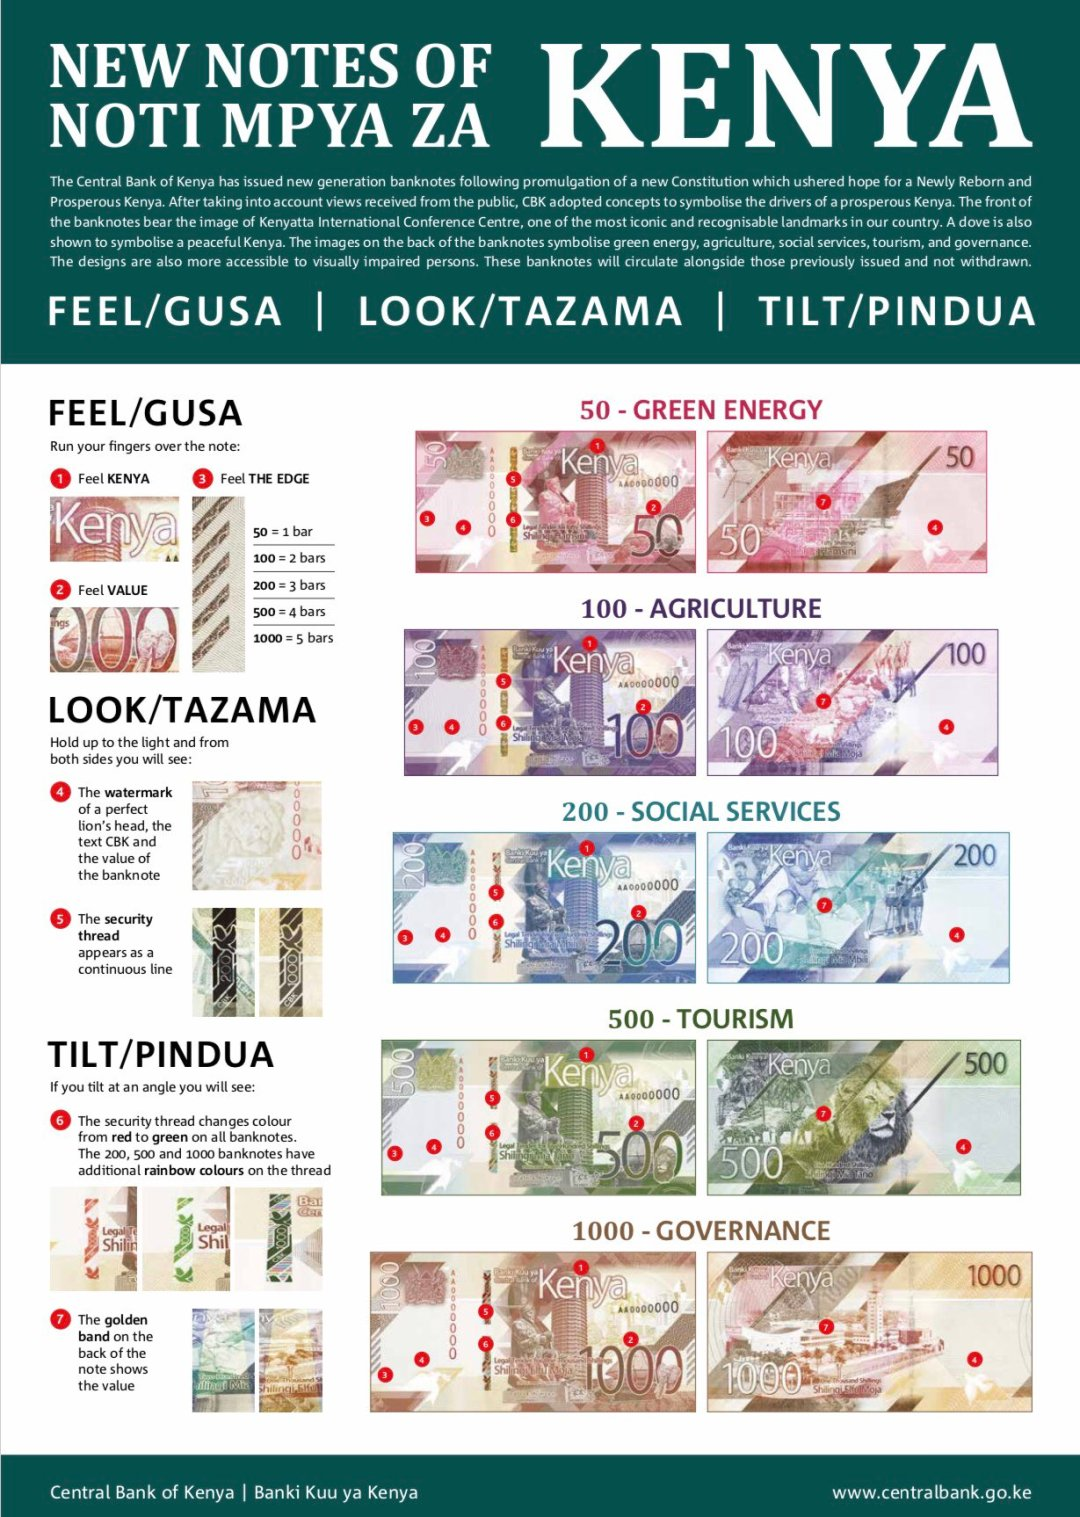 Pictured of the new notes and description of the features